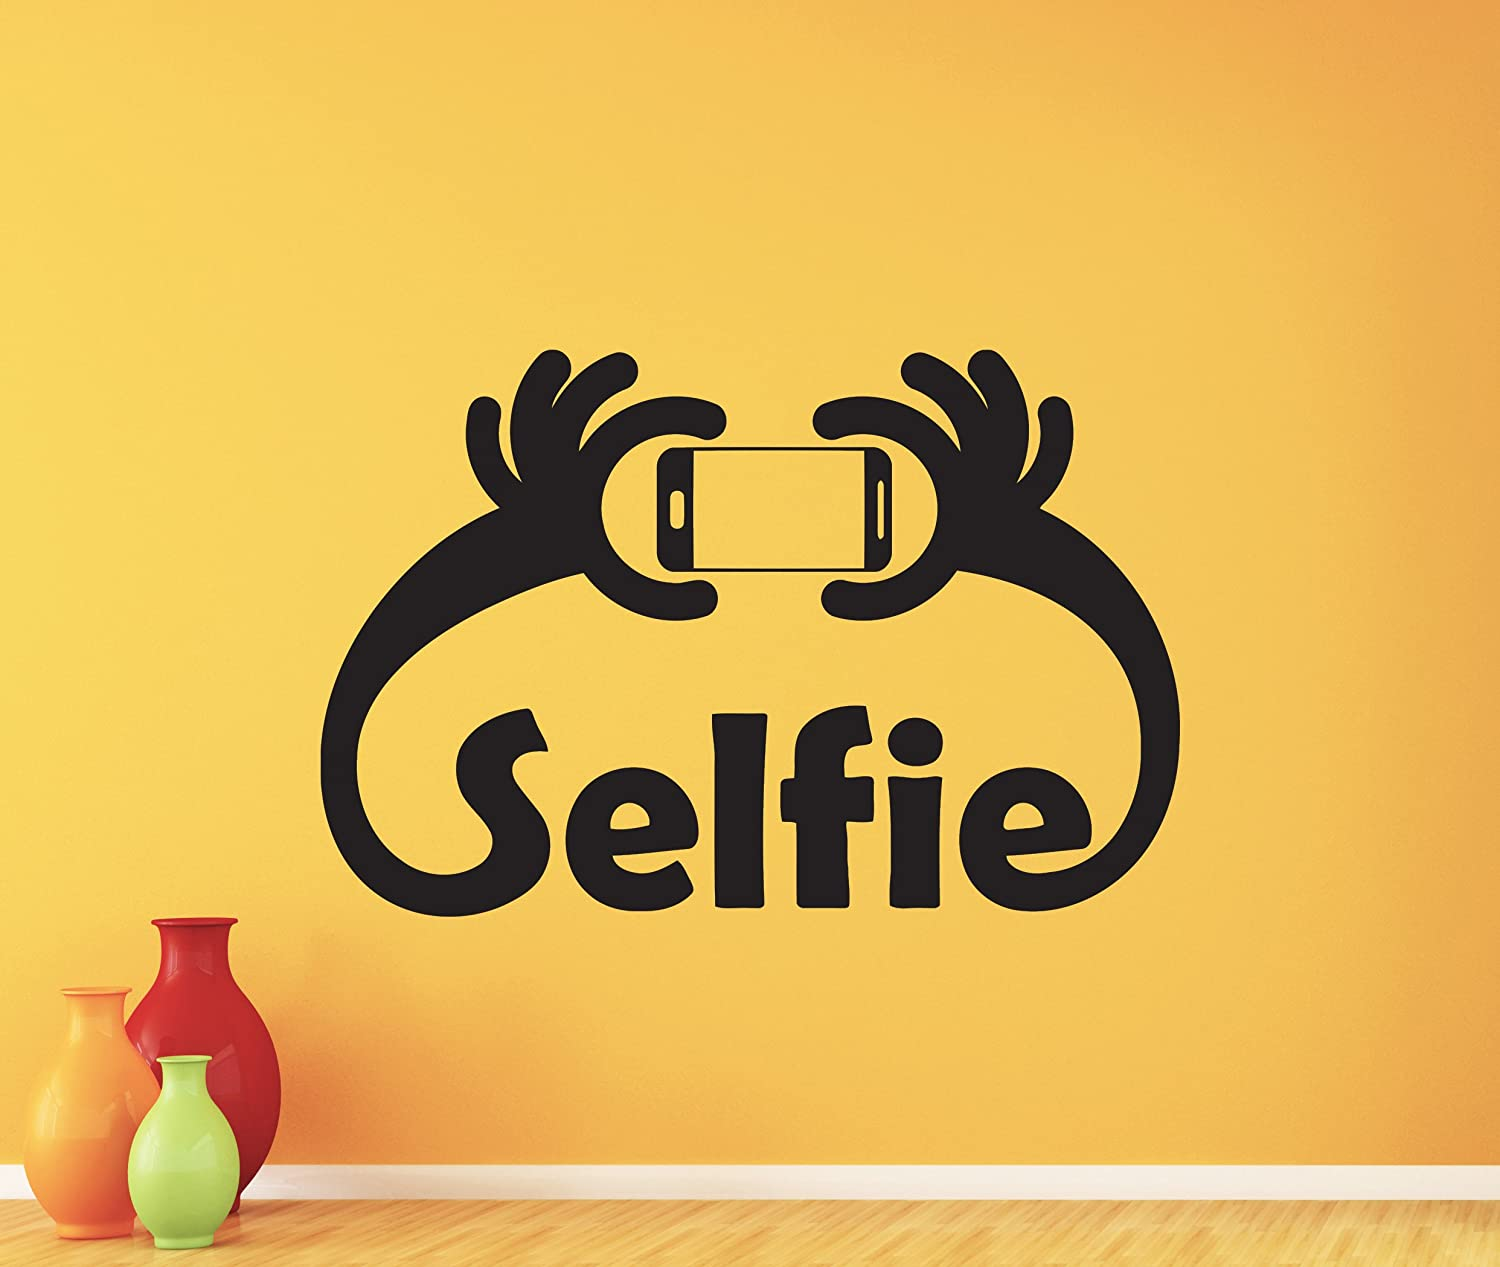 Selfie Wall Decal Selfie Photographer Vinyl Sticker Photo Studio ...